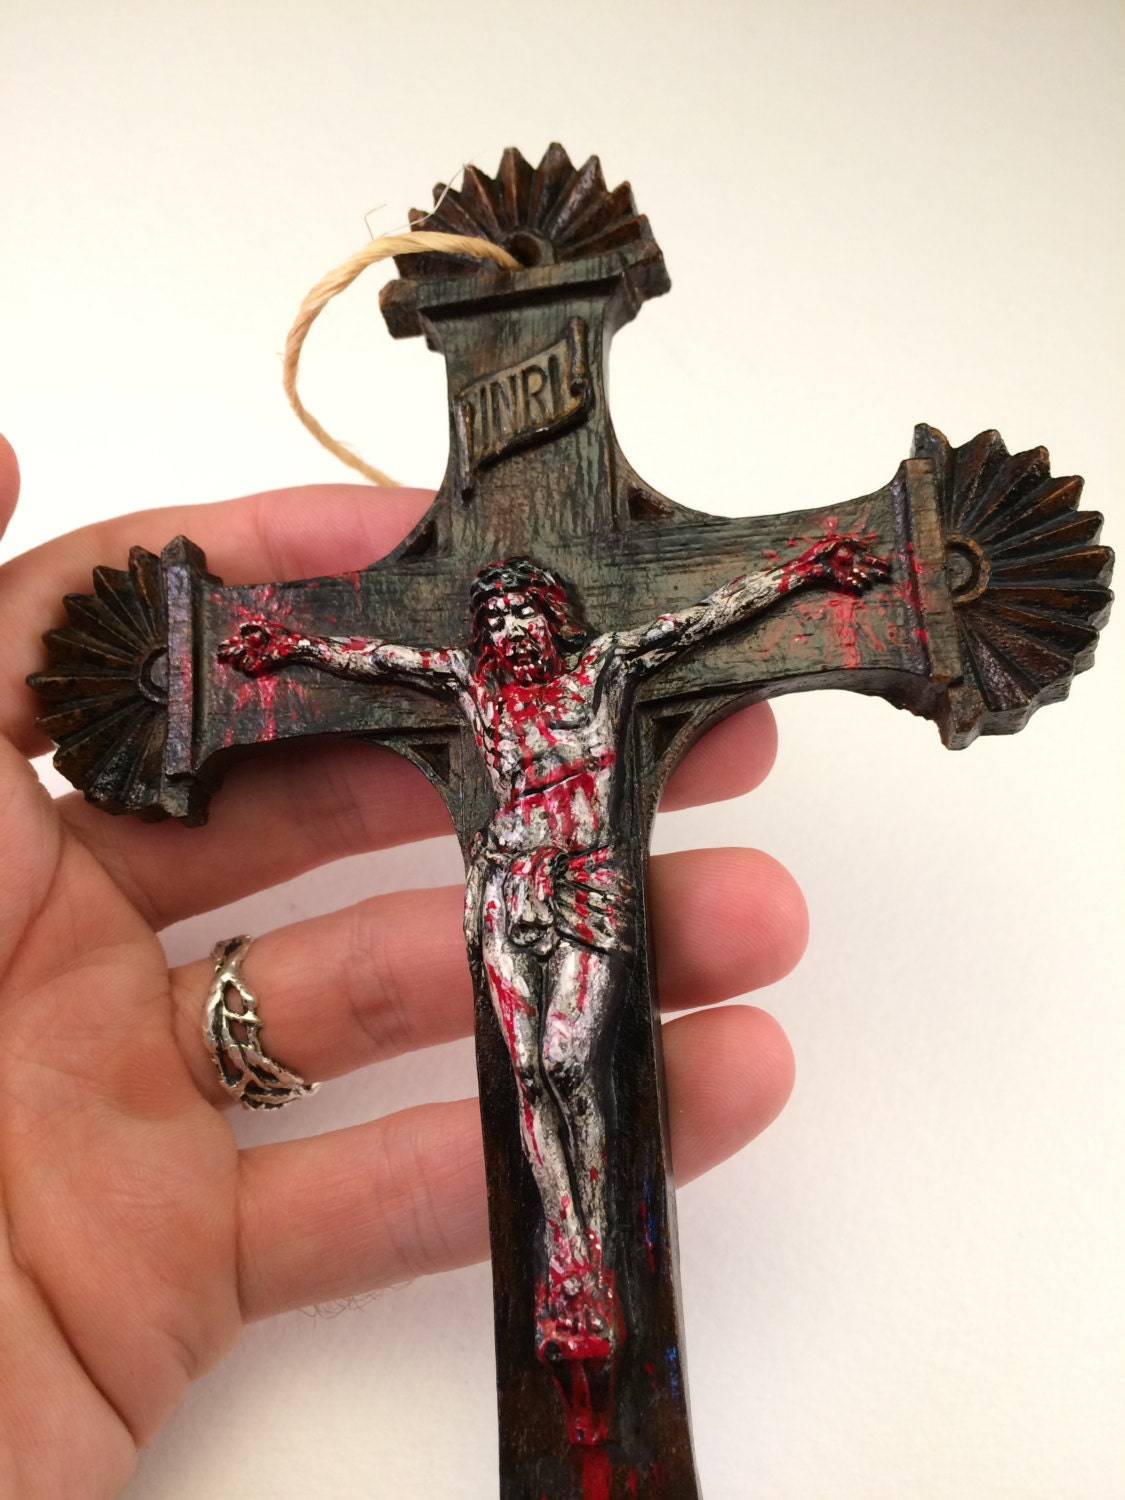 Zombie jesus halloween ornament horror cross crucifix religion